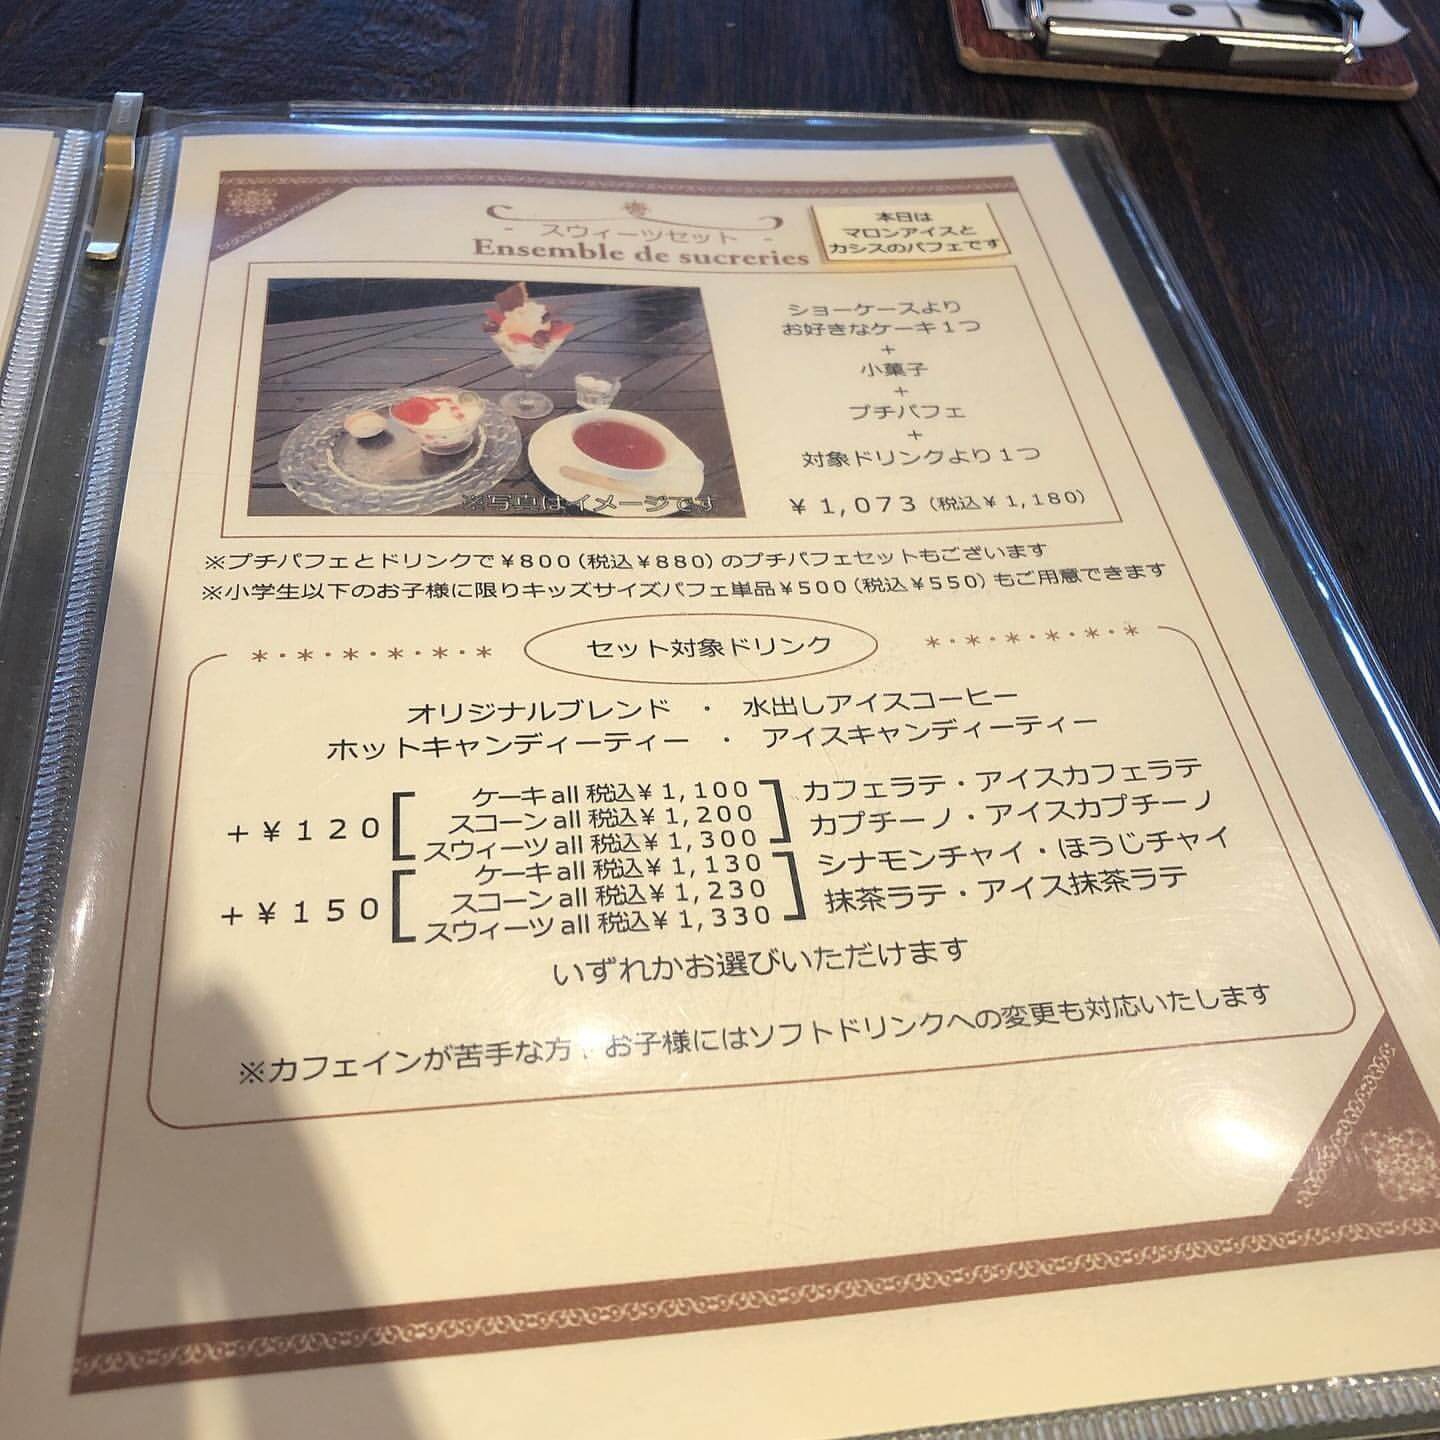 Patisserie cafe L'Or(パティスリーカフェ ロール)のメニュー